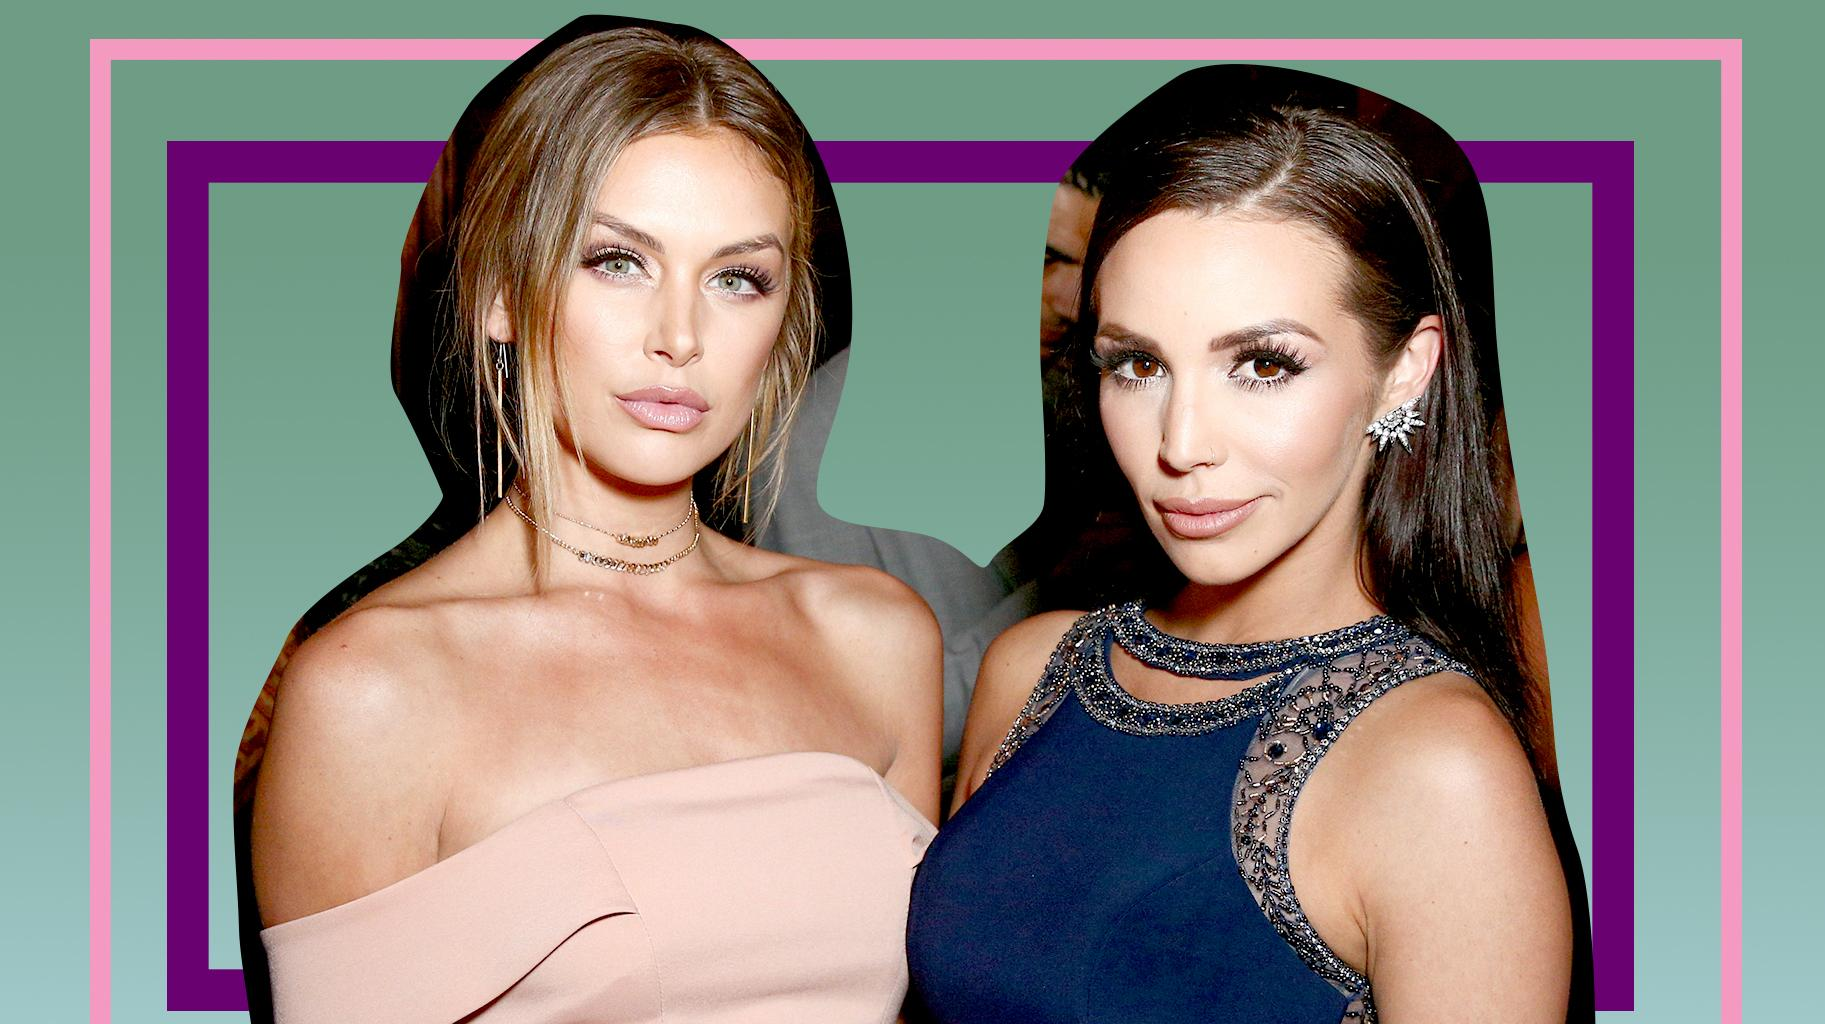 Vanderpump Rules: Scheana Marie Thinks Lala Kent Let Fame Get To Her Head